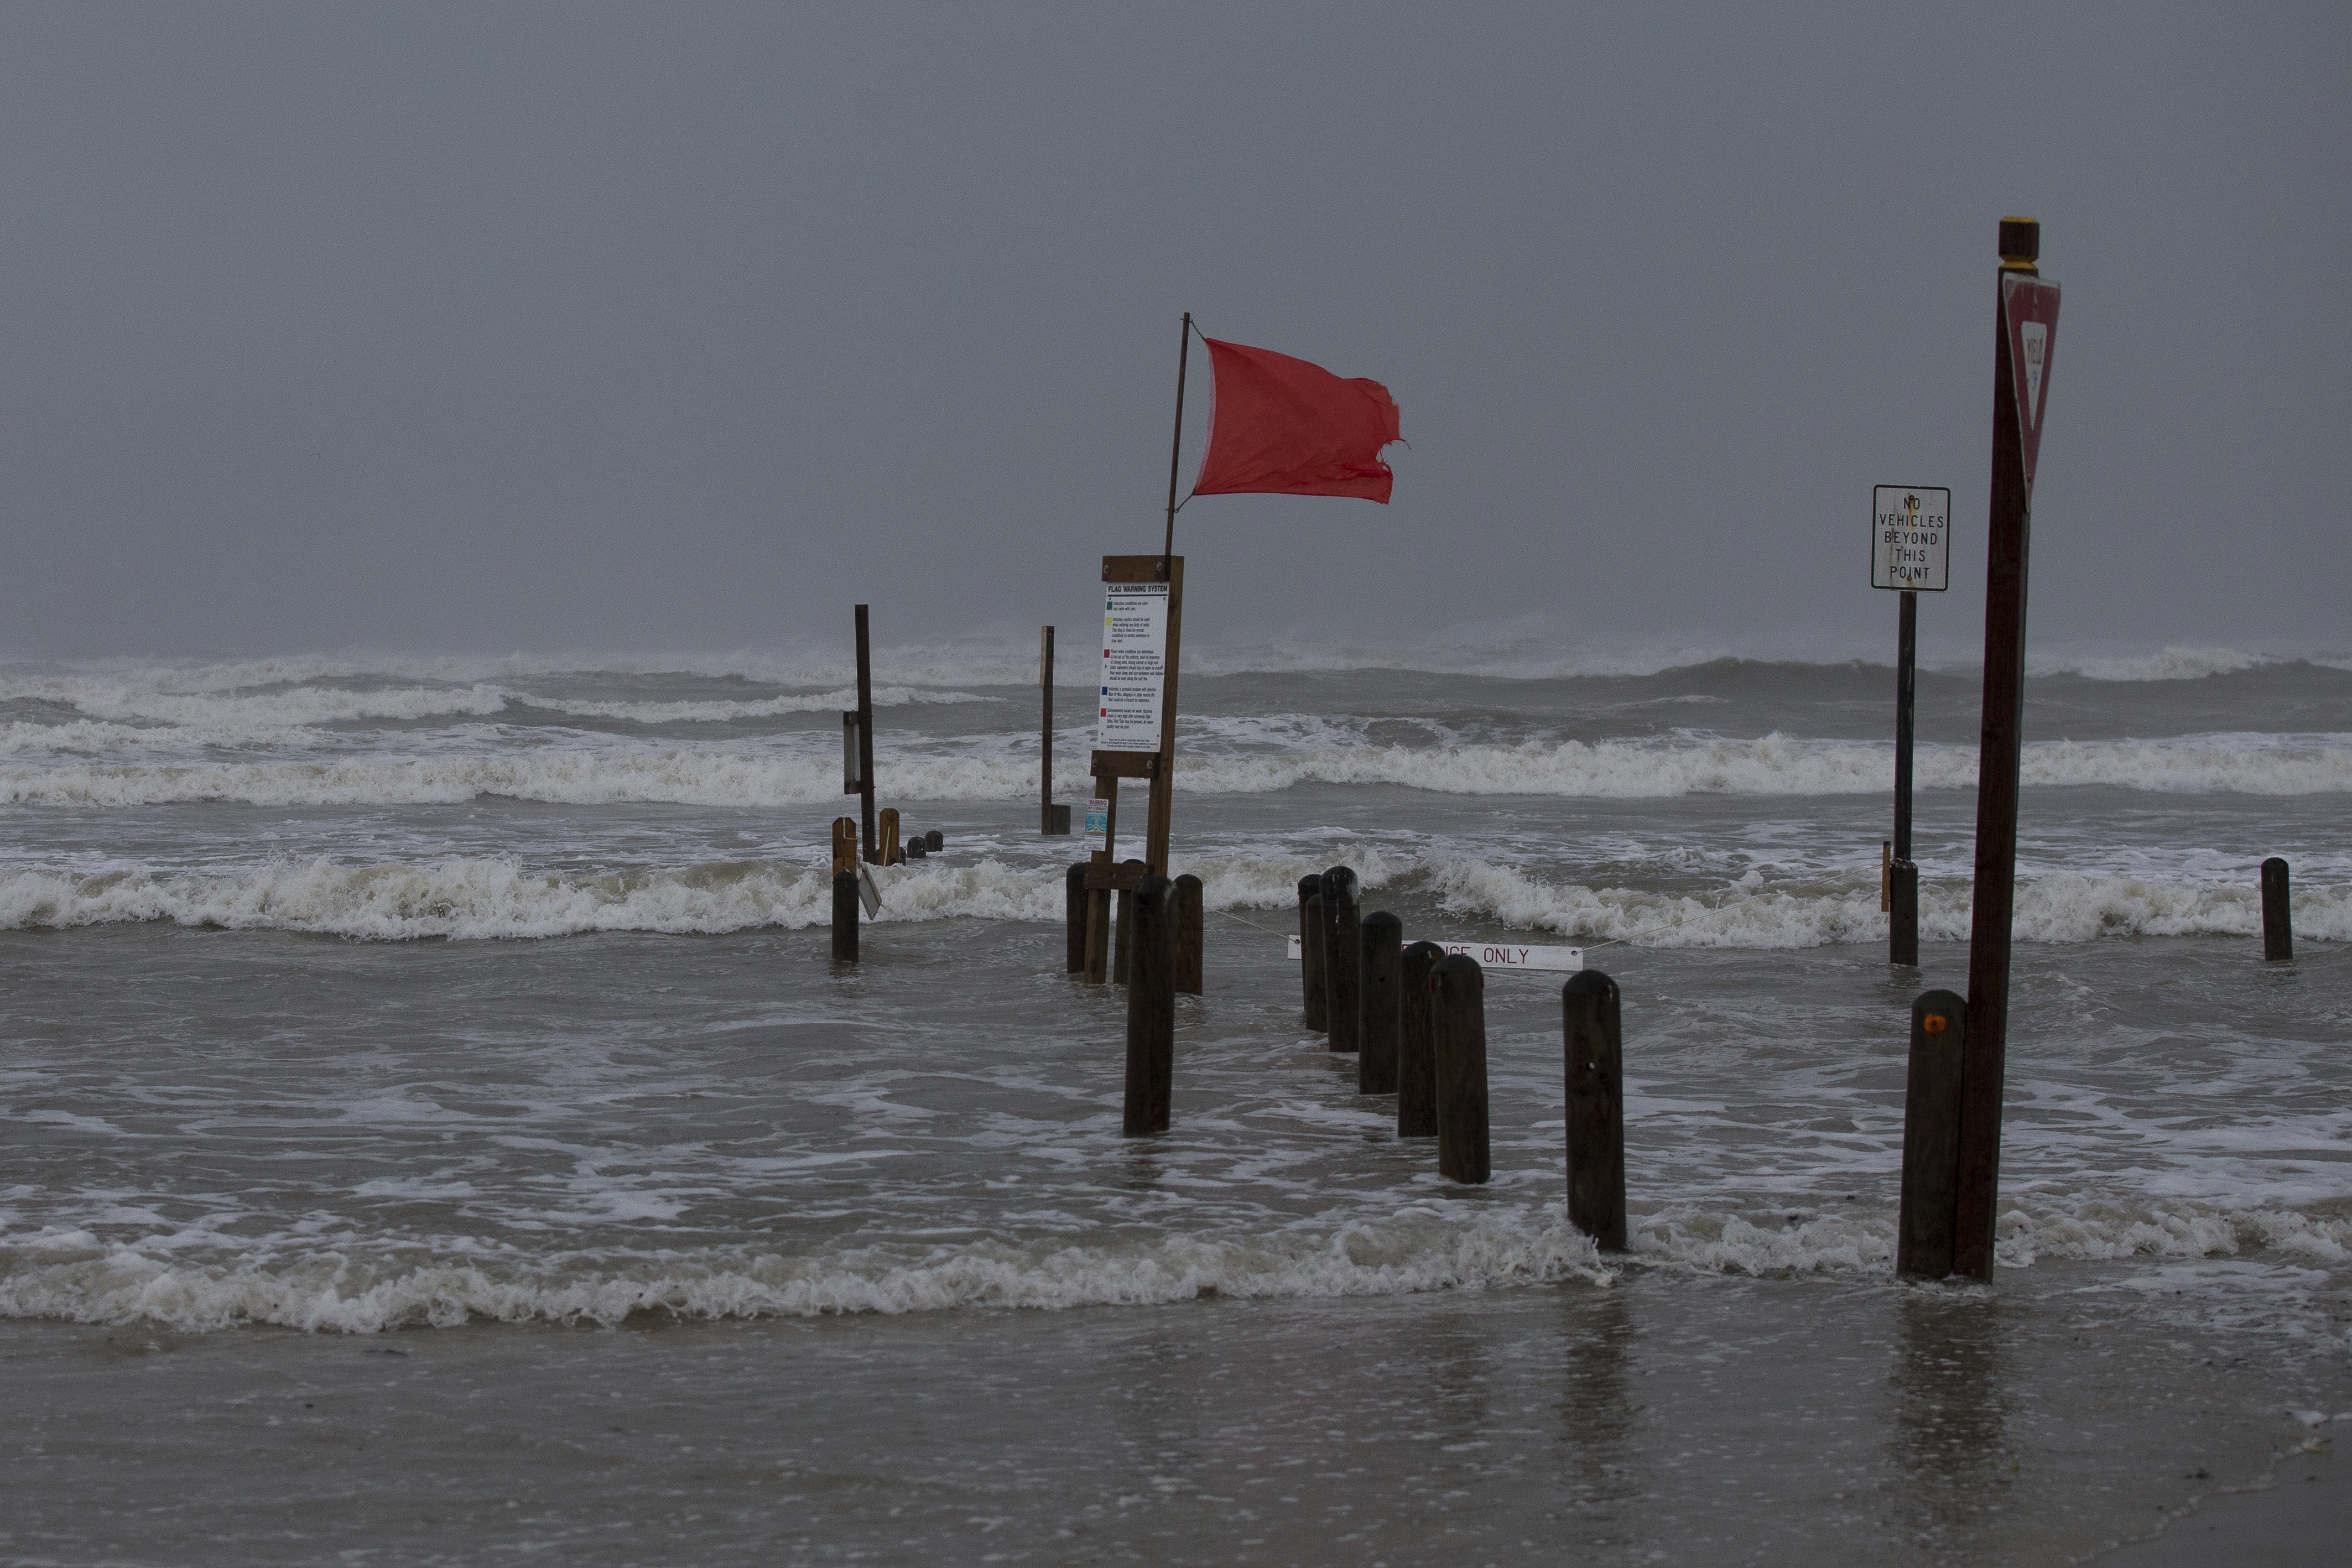 "Water rises at Bob Hall Pier in Corpus Christi, Texas as Hurricane Harvey approaches on Friday, Aug. 25, 2017.  The slow-moving hurricane could be the fiercest such storm to hit the United States in almost a dozen years. Forecasters labeled Harvey a ""life-threatening storm"" that posed a ""grave risk"" as millions of people braced for a prolonged battering. (Courtney Sacco/Corpus Christi Caller-Times via AP)"